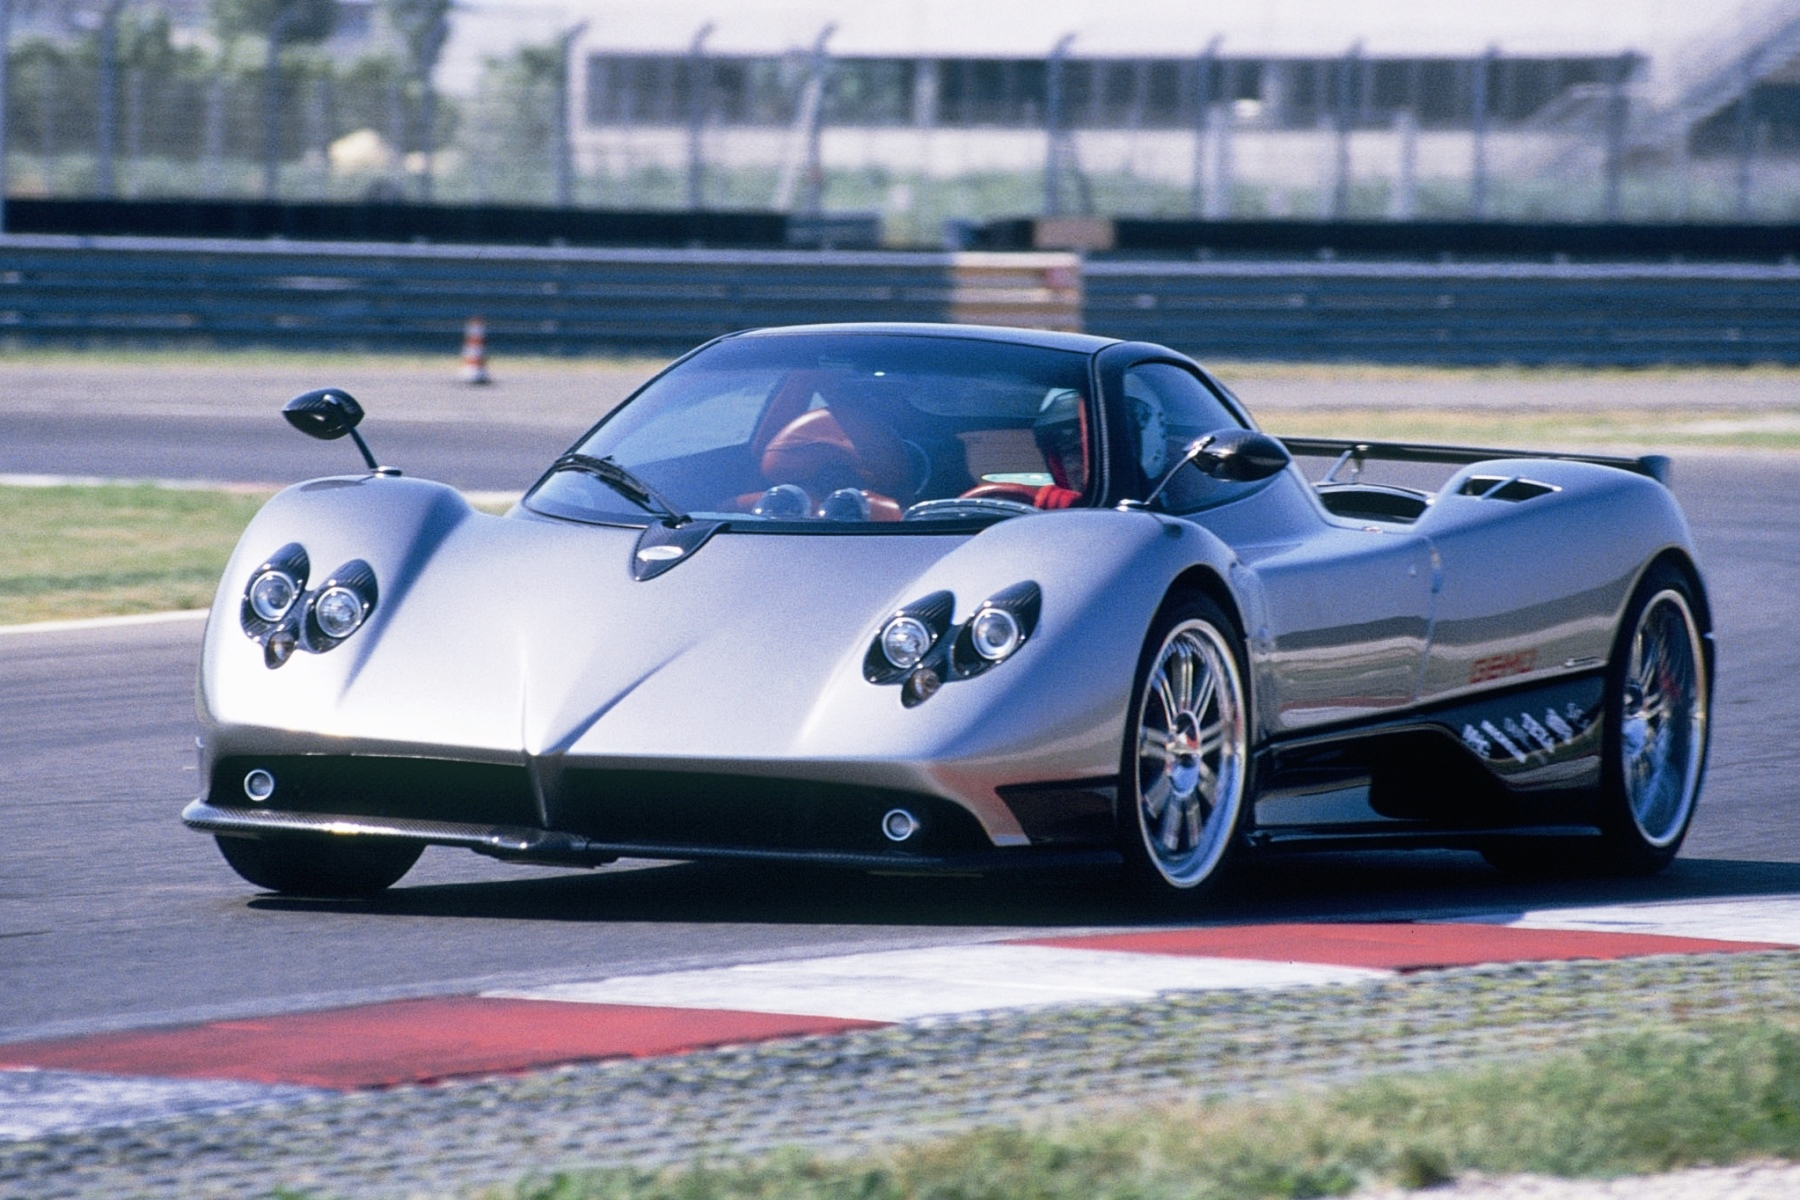 Pagani Zonda is UK's fantasy car purchase – Automotive Blog